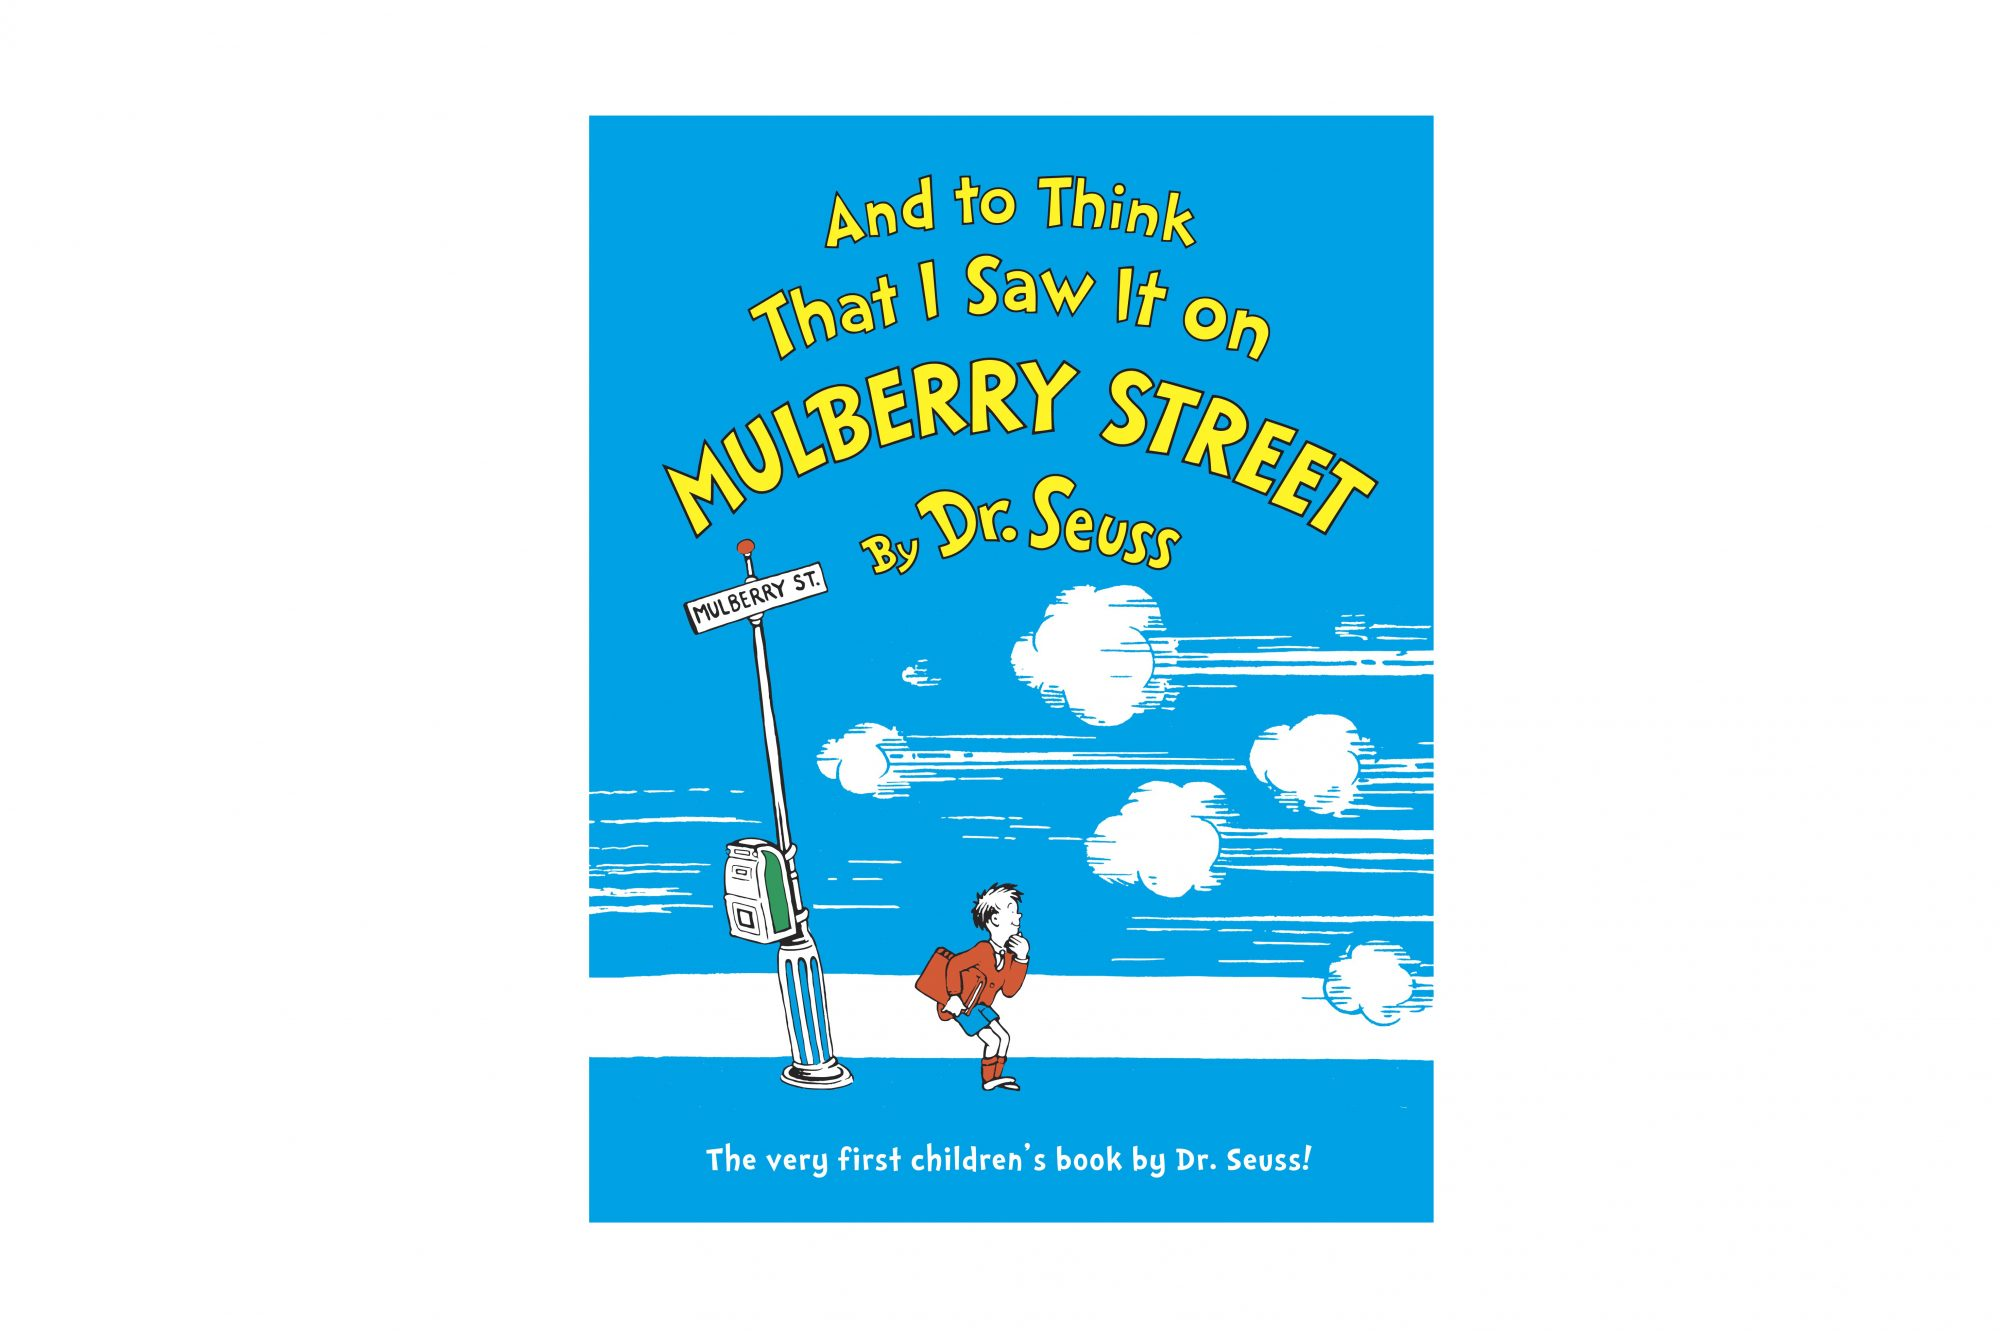 And to Think That I Saw It on Mulberry Street, by Dr. Seuss